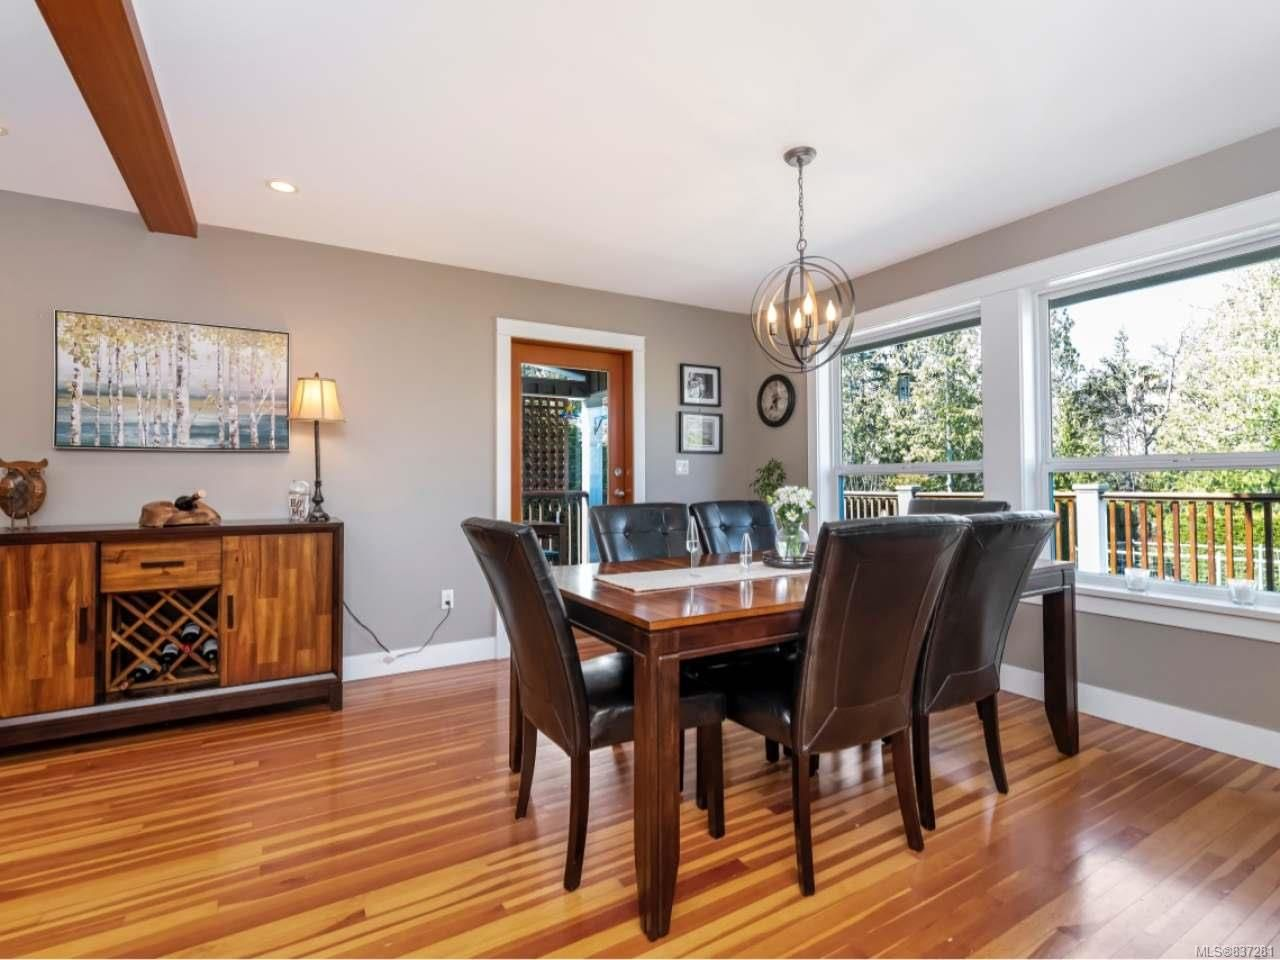 Photo 18: Photos: 925 Lilmac Rd in MILL BAY: ML Mill Bay House for sale (Malahat & Area)  : MLS®# 837281